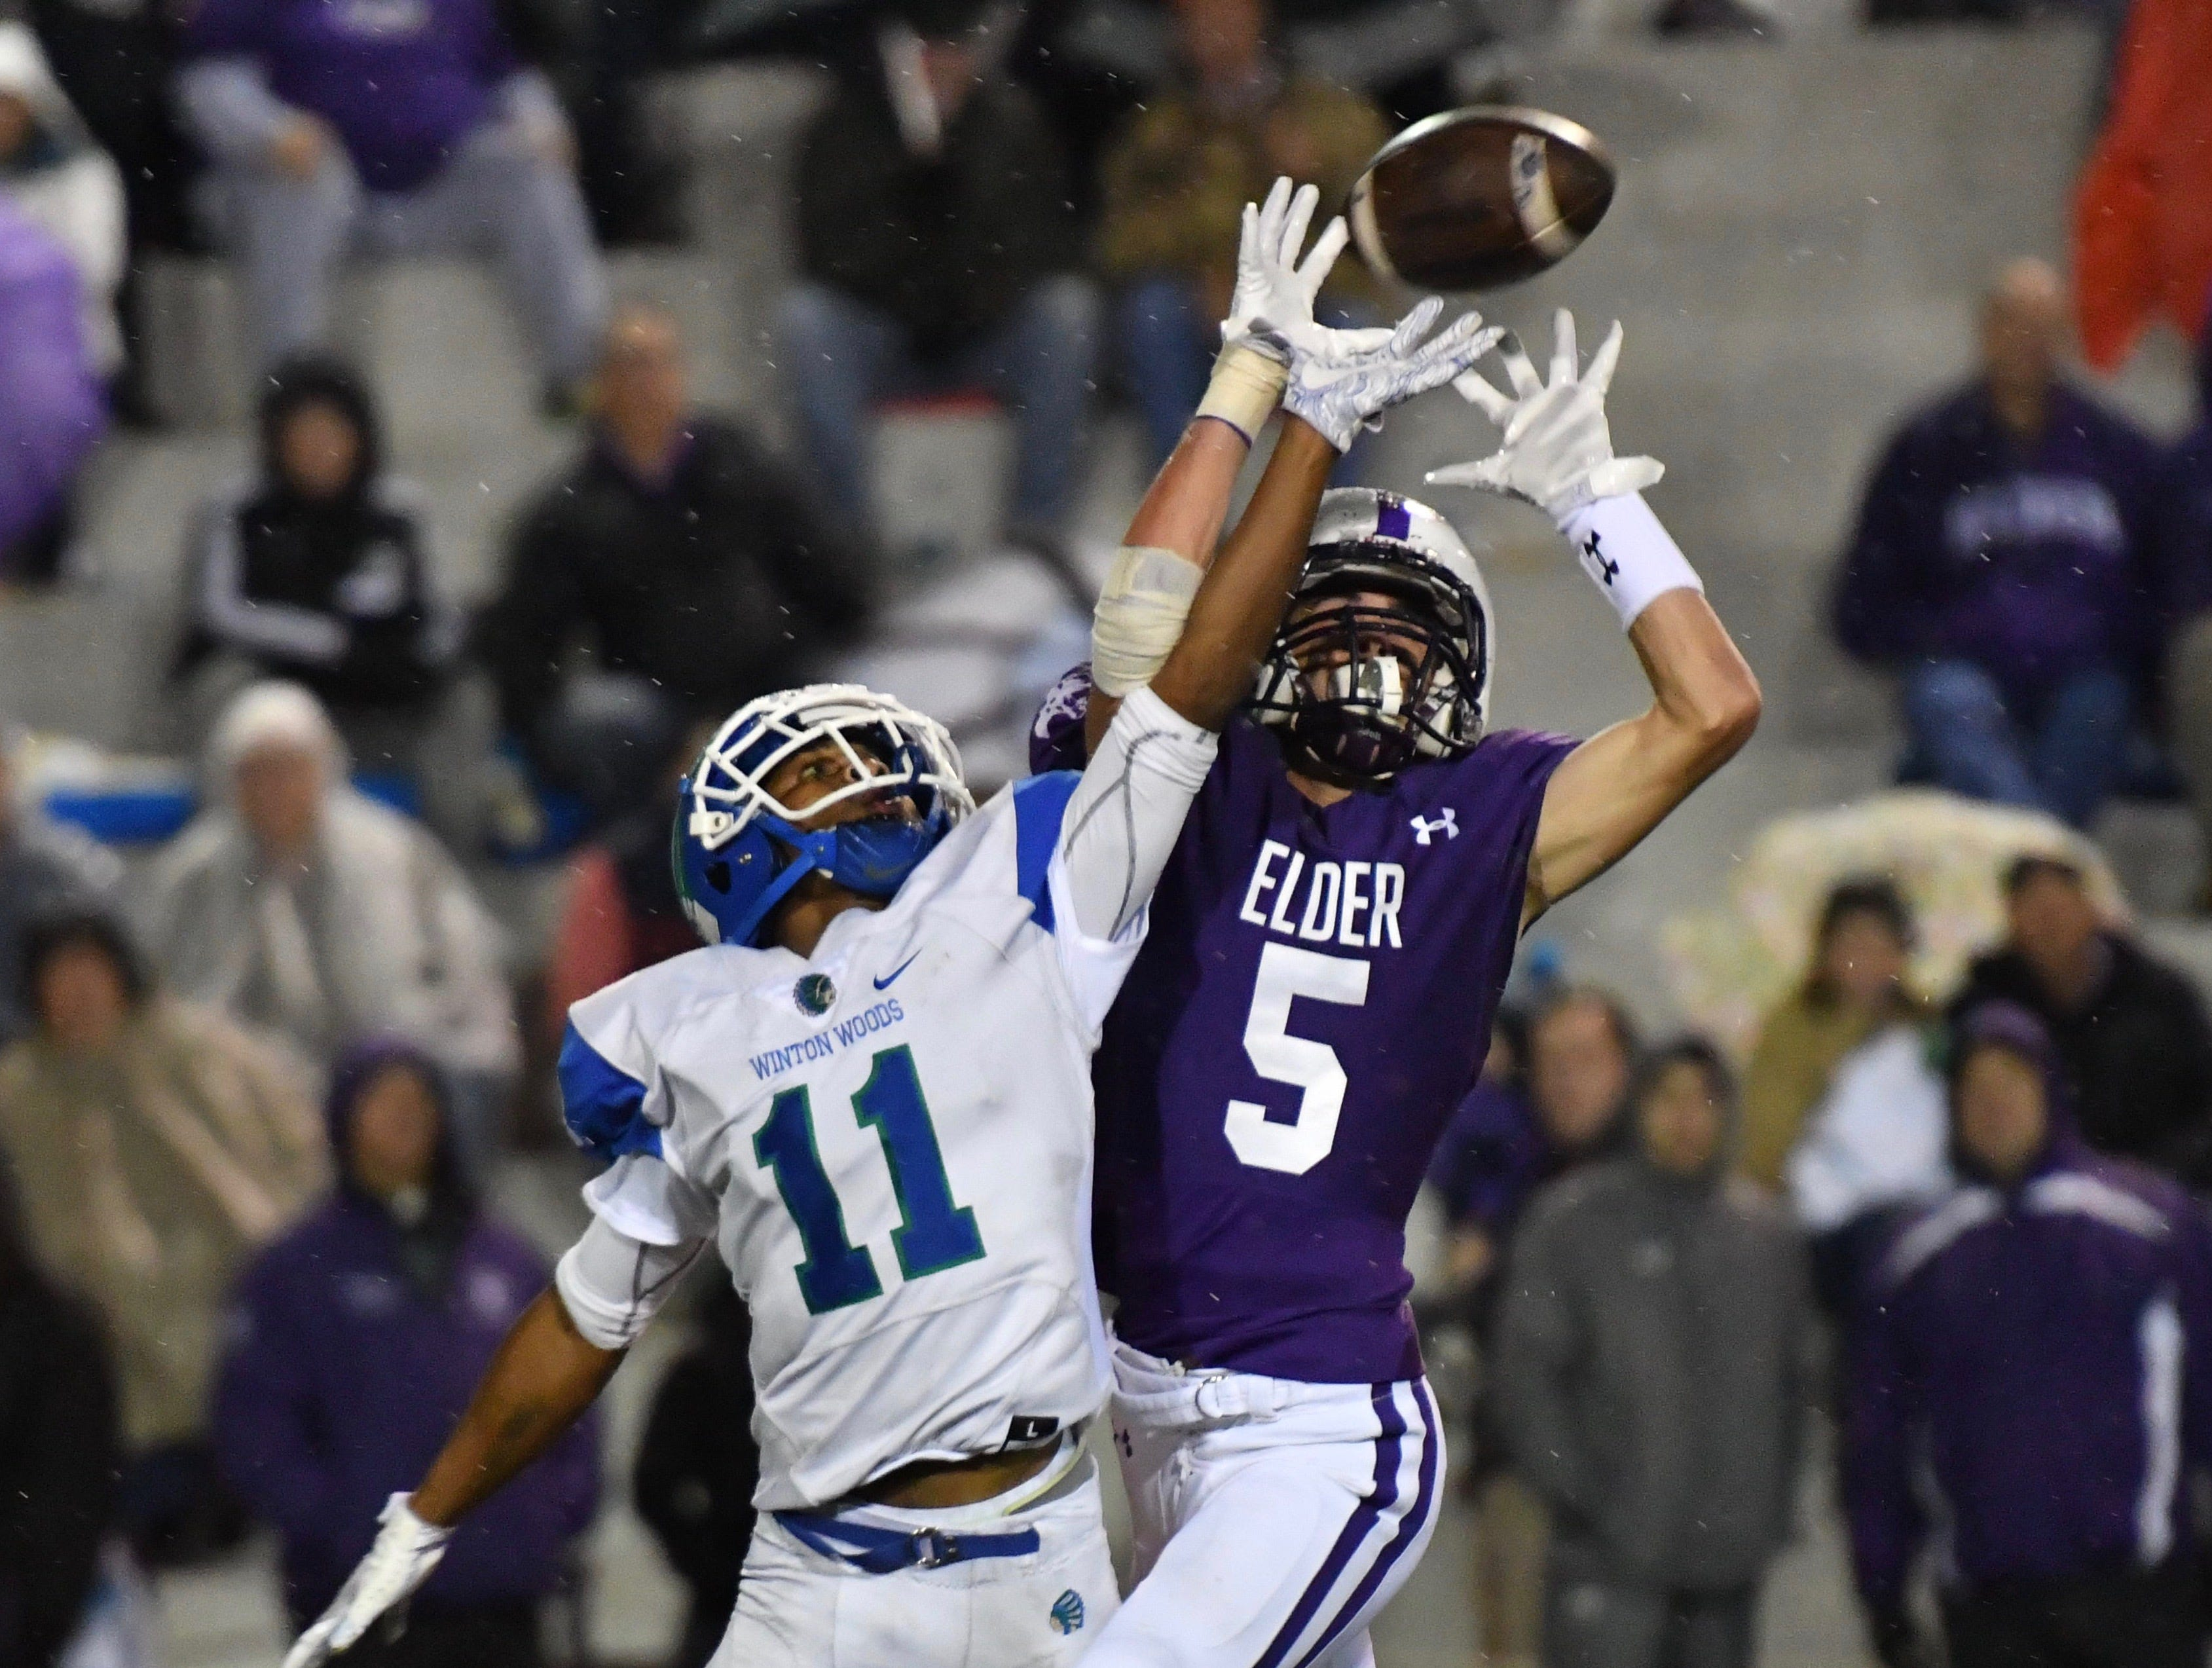 Elder's Sean O'Conner and Winton Woods' Tyquan Fleming battle for a pass in the second quarter Friday, Oct. 12, 2018 at High School